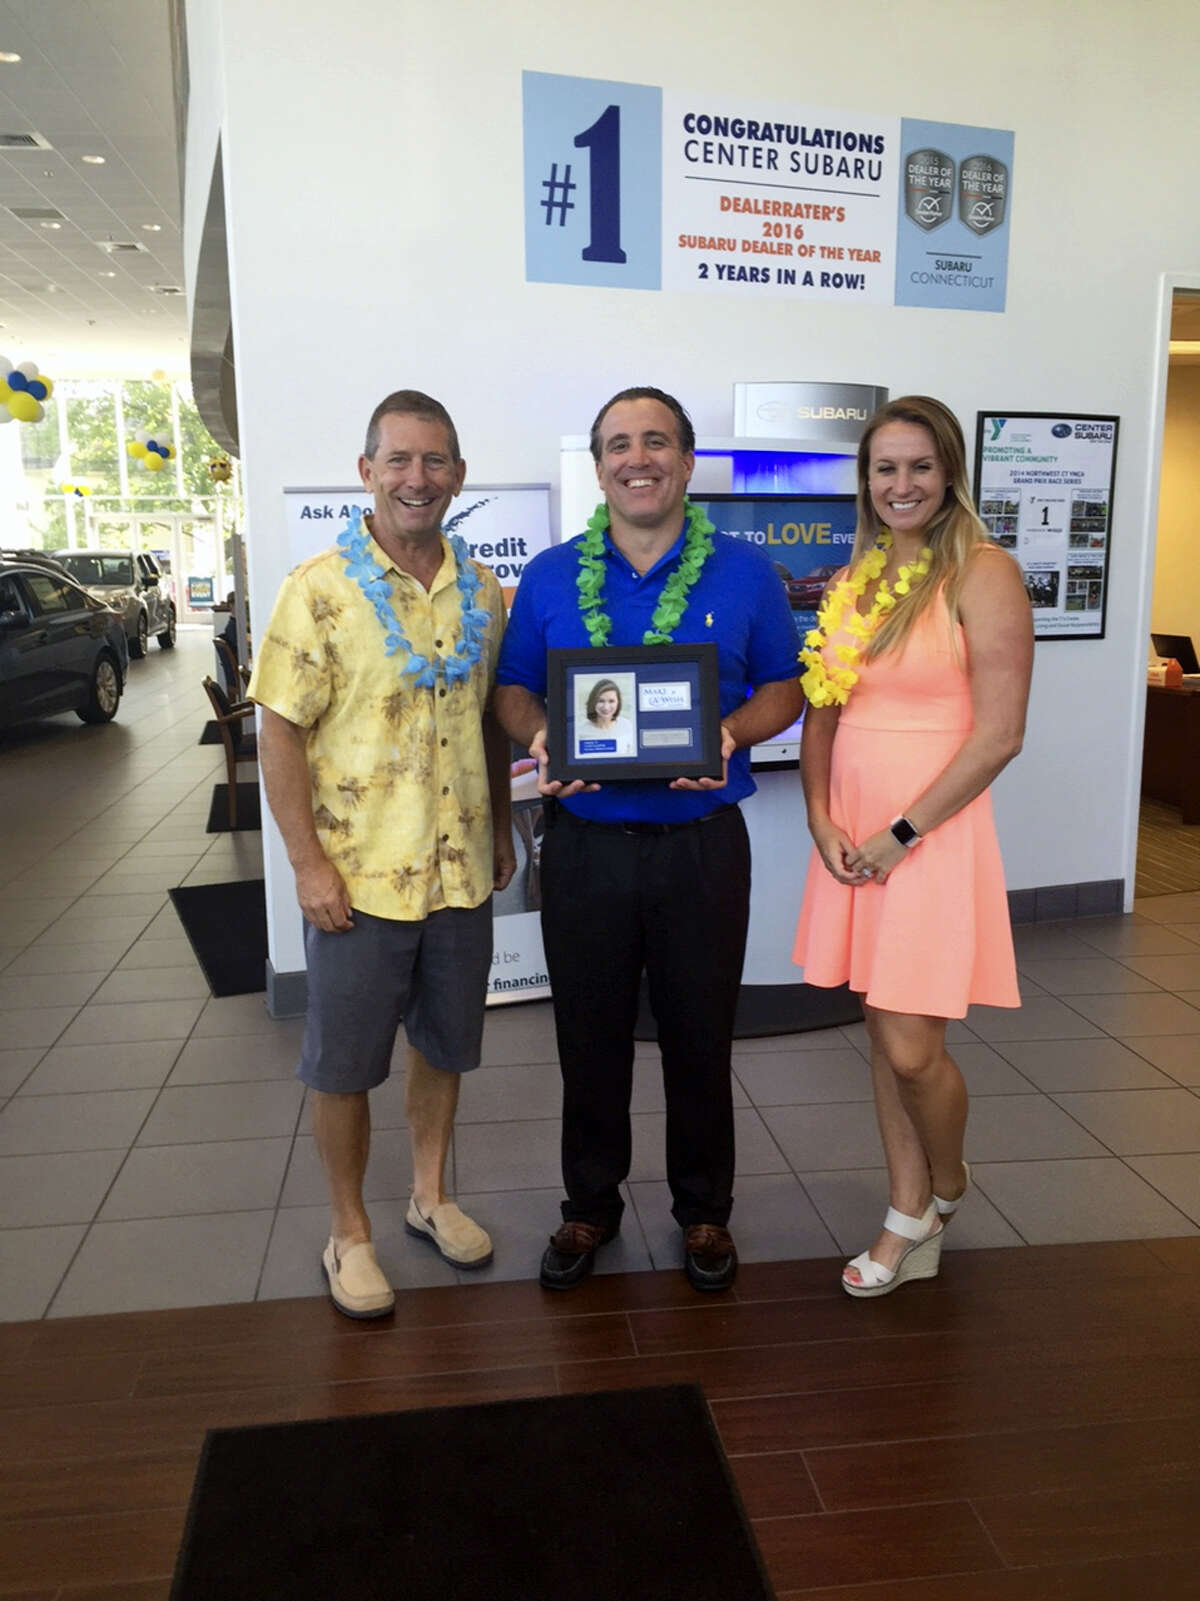 Contributed photo Center Subaru in Torrington hosted a Wish Delivery party for Wish Kid, Robert, who wished to go to Hawaii. Above, family and Subaru staff gather for a photo.